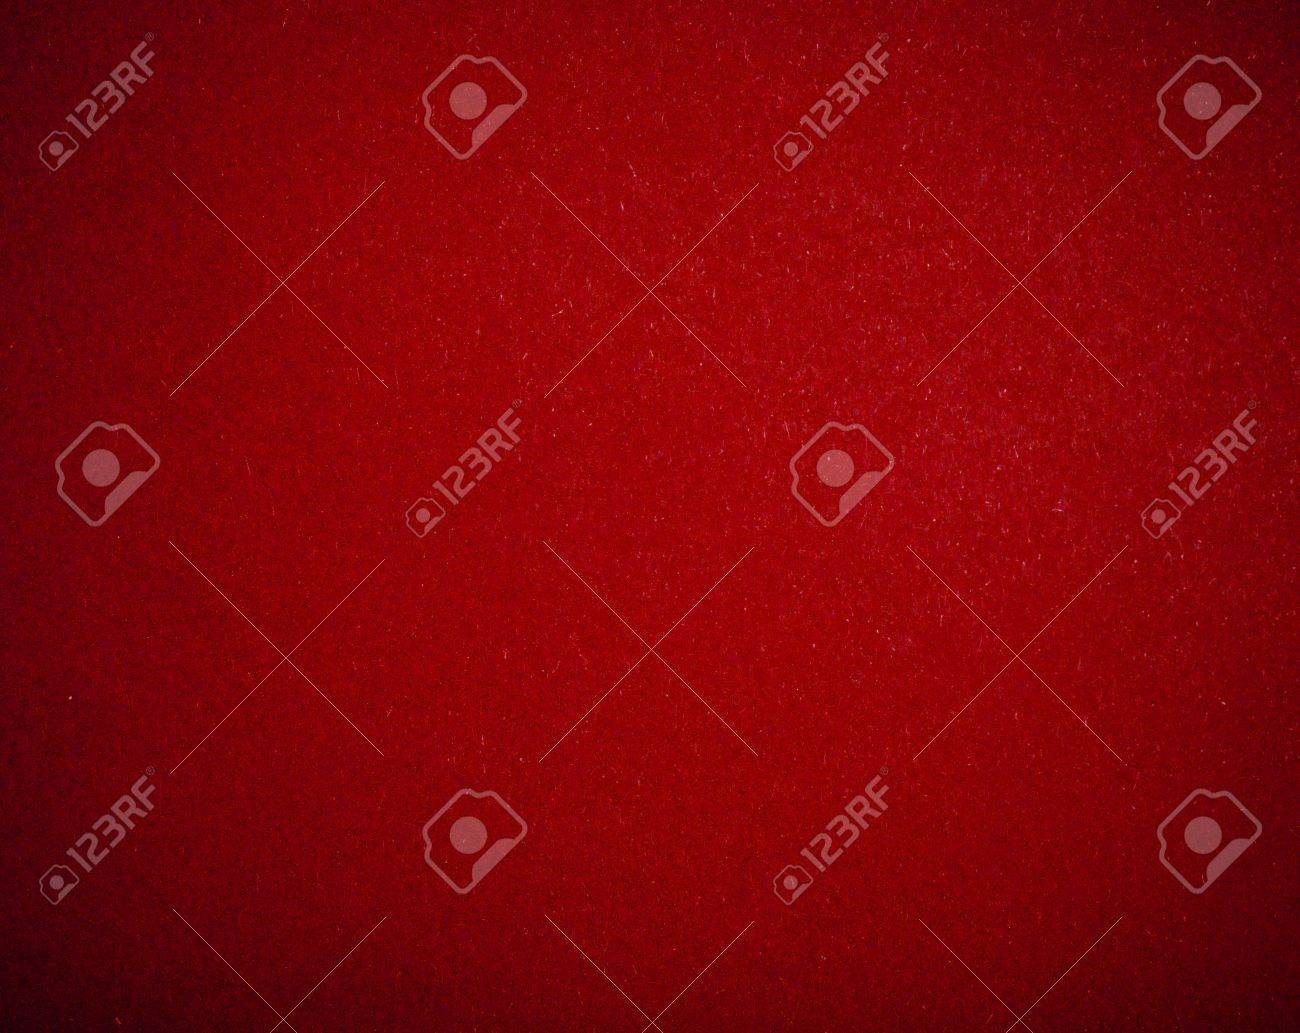 Poker table background hd - Poker Table Felt Background In Red Color Stock Photo 18862418